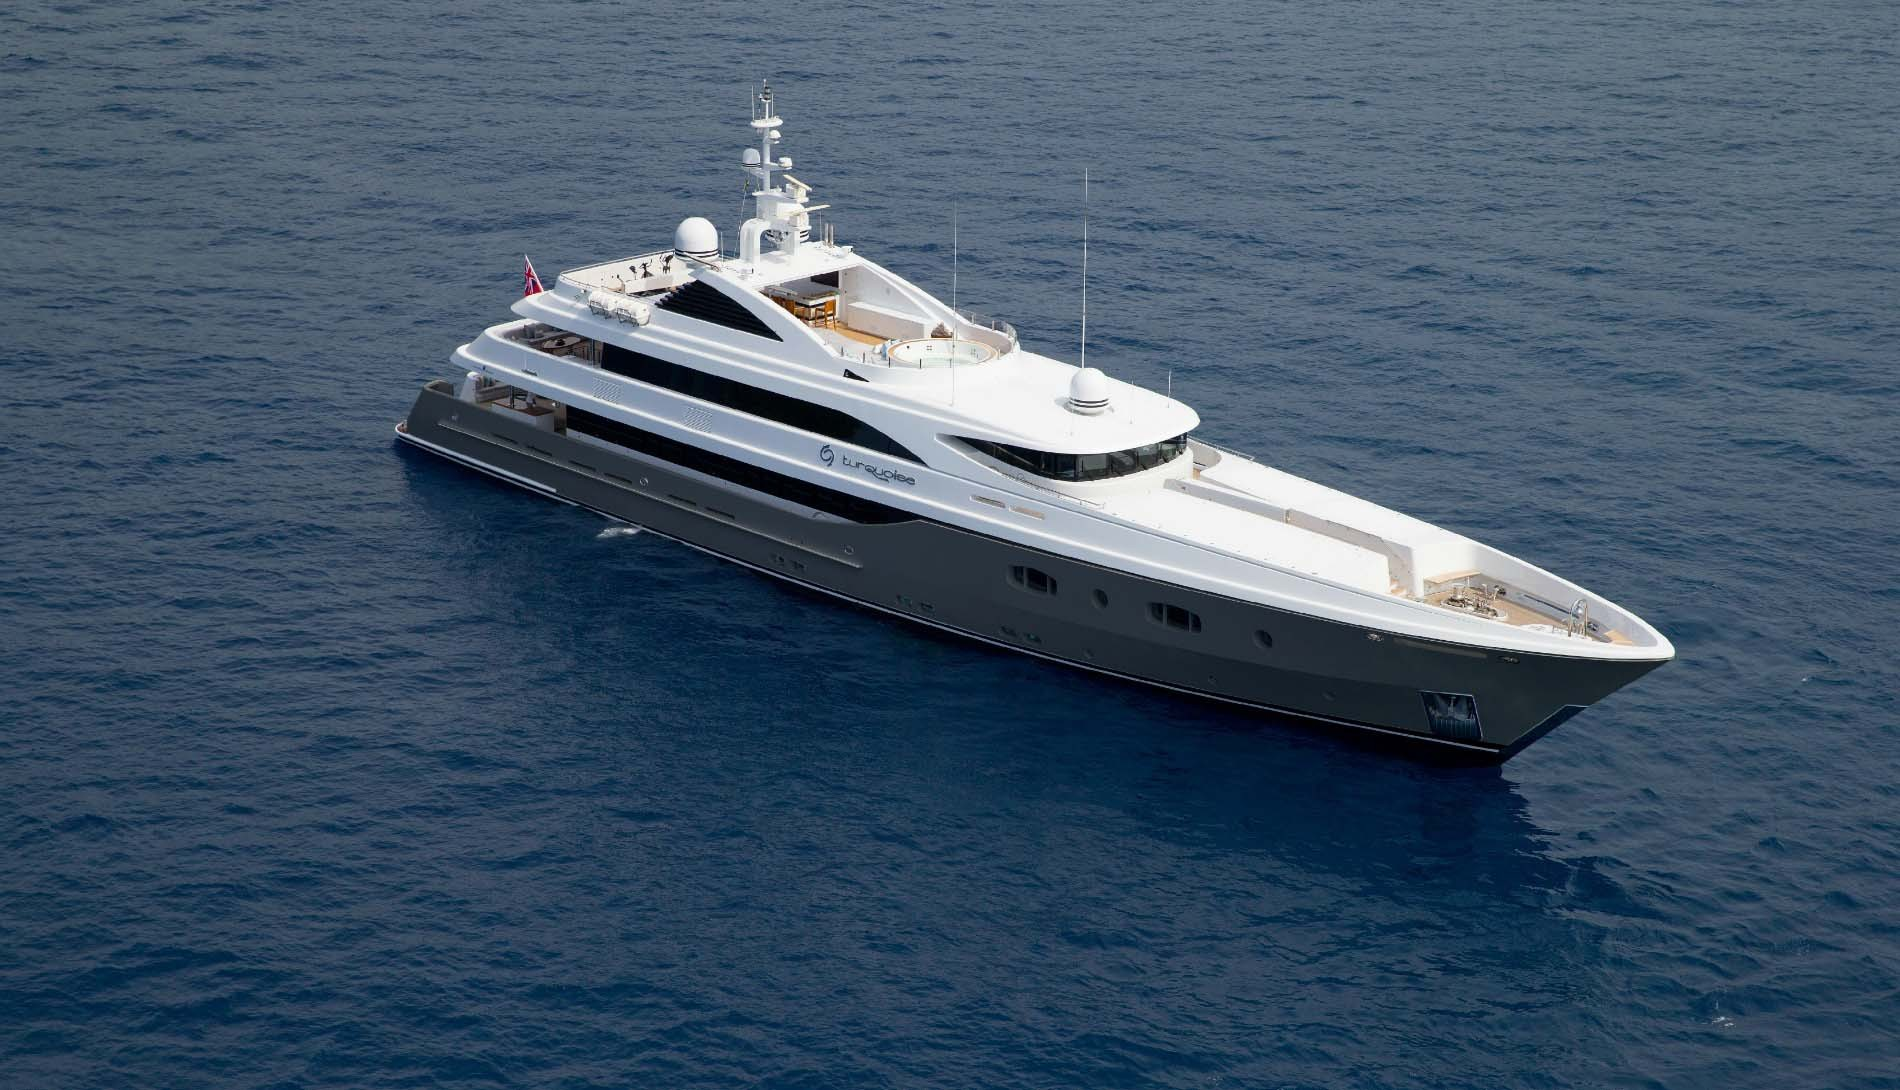 The Magnificent Super Yacht Turquoise